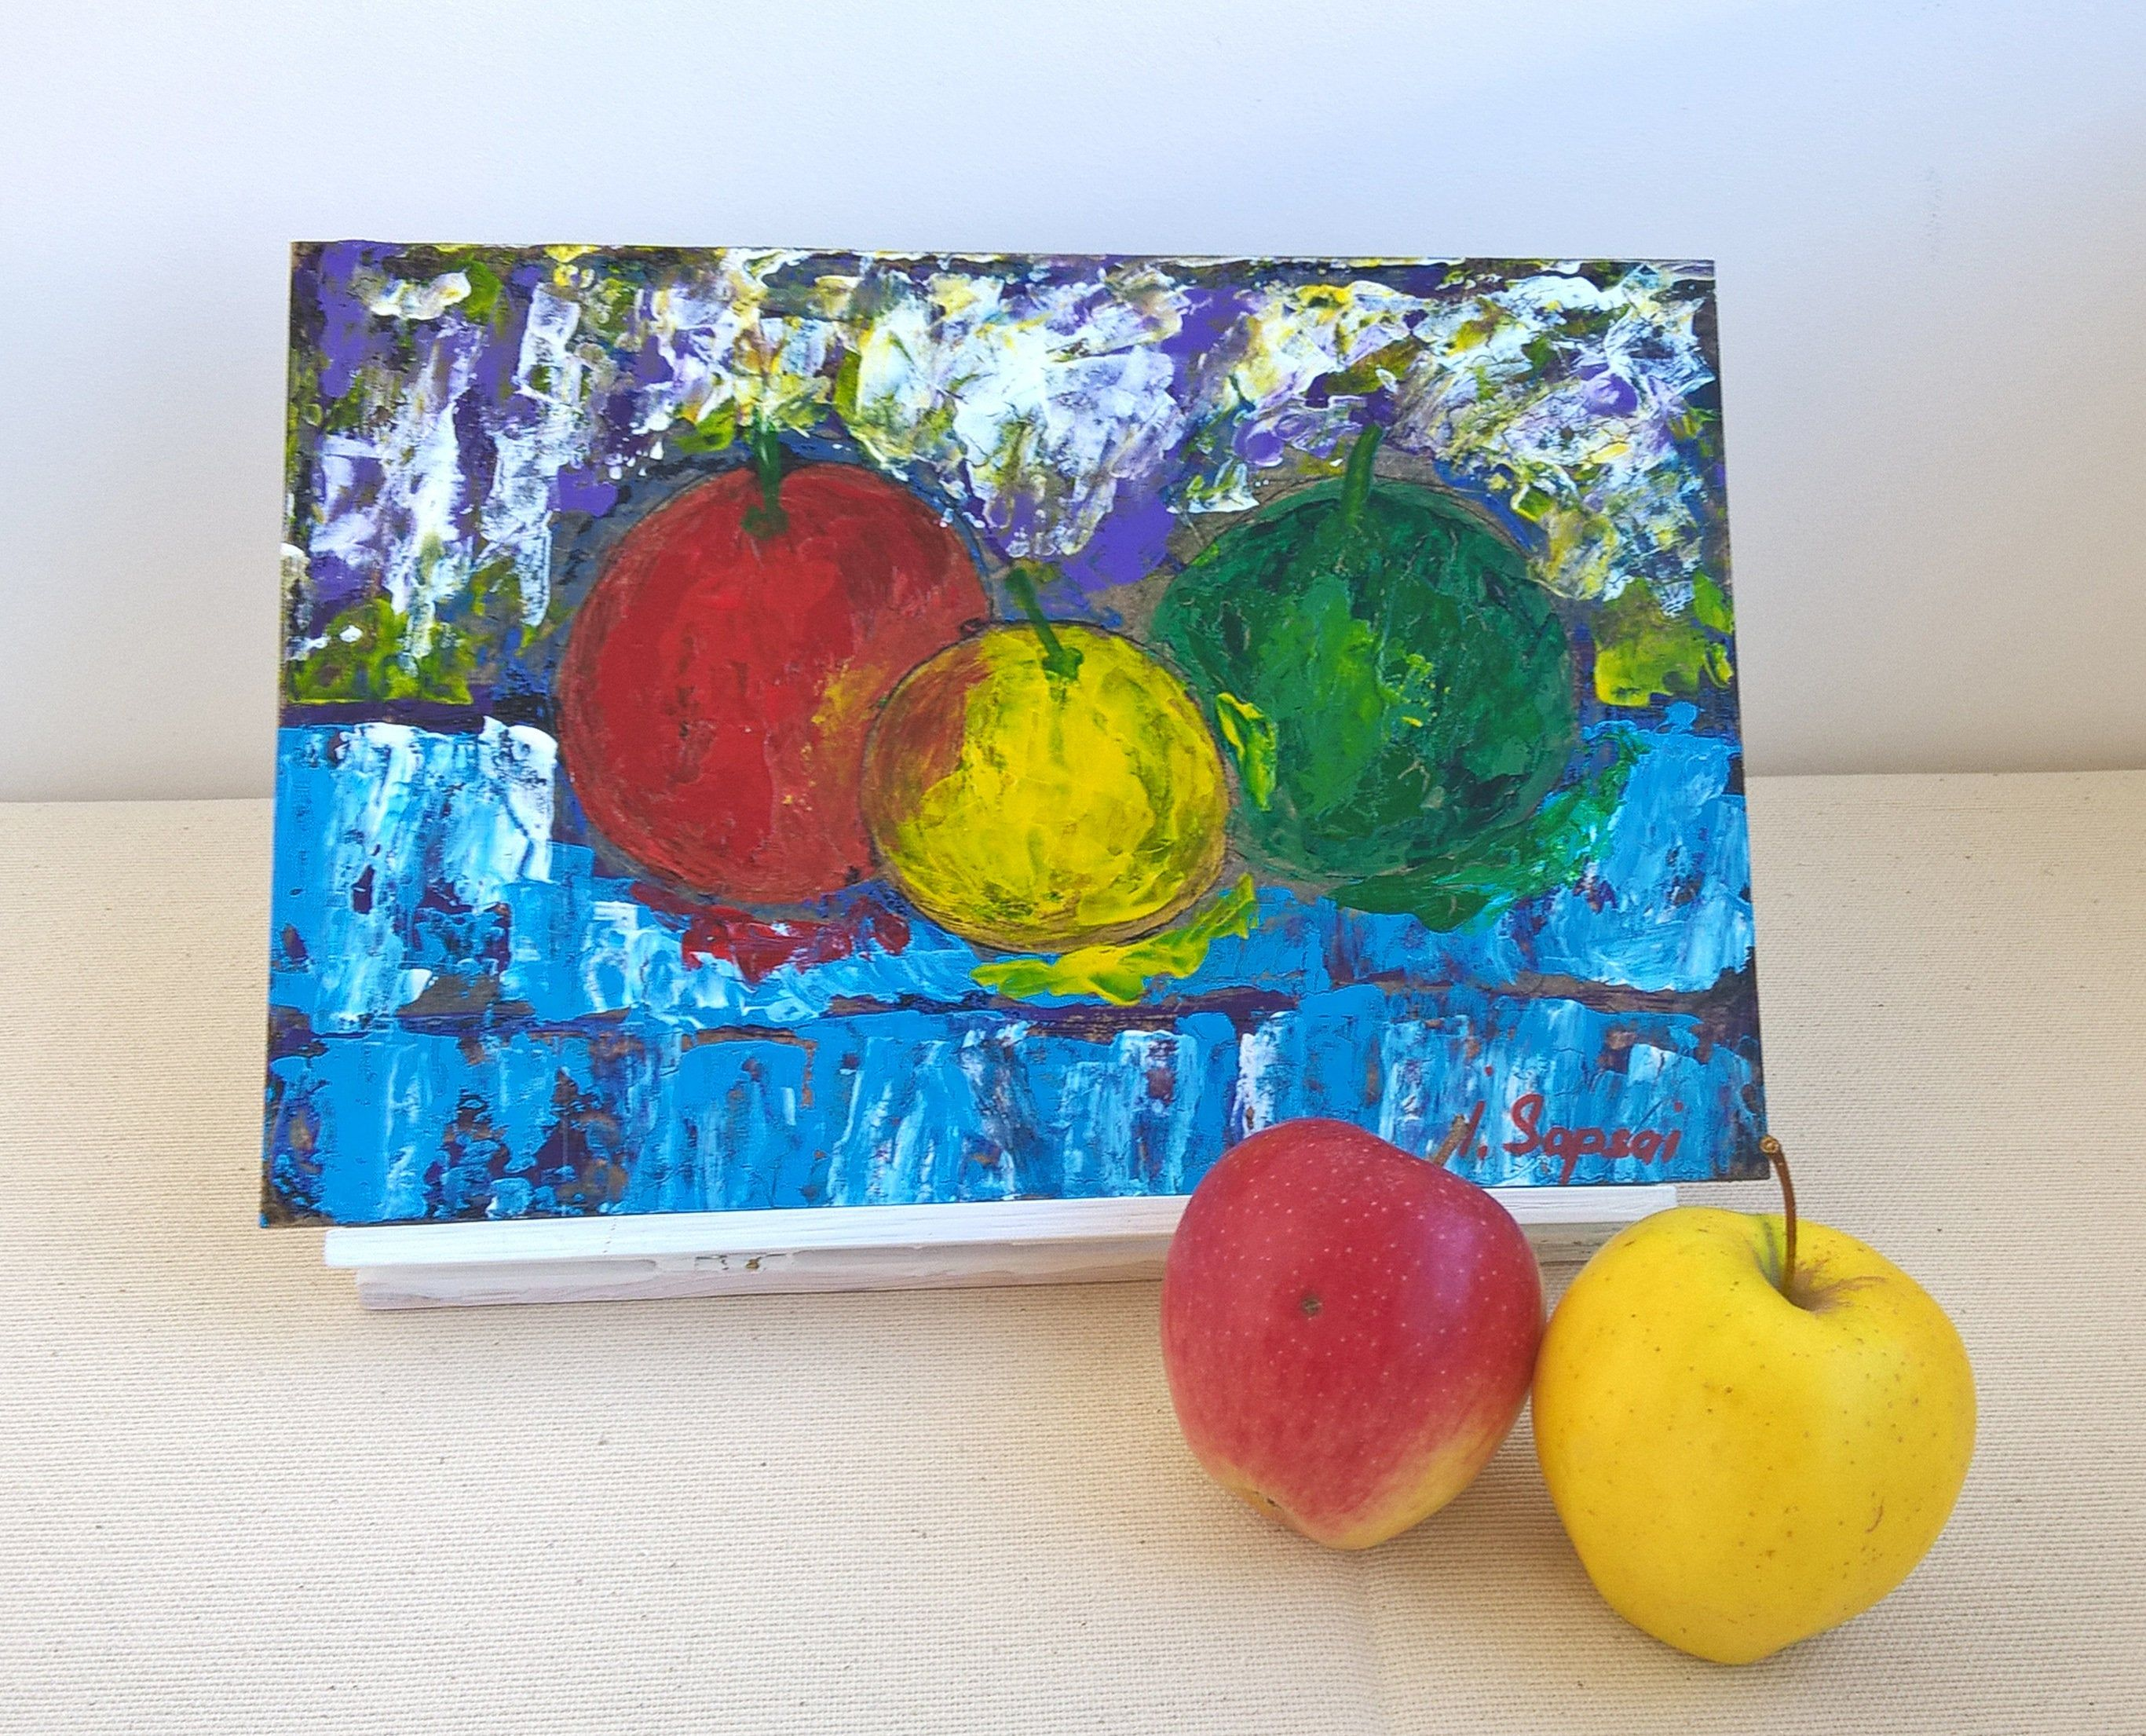 Apple Paintings Original Fruit Art Painting With Apples Still Etsy Apple Painting Abstract Flower Painting Painting